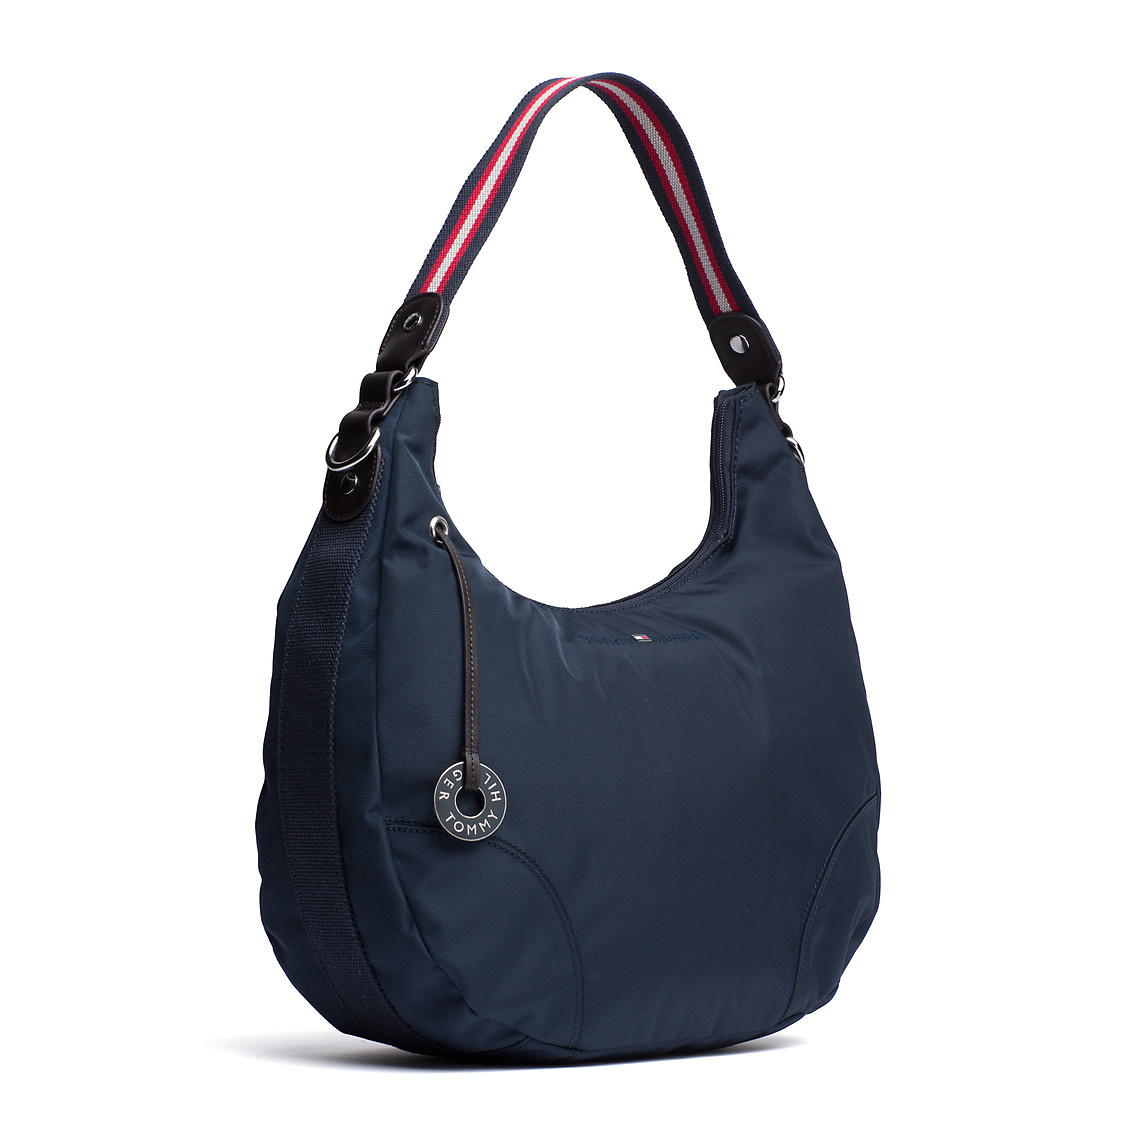 0295b63205b7 Tommy Hilfiger Savannah Hobo In Blue Lyst. Tommy Hilfiger Handbag Light  Purple Women Bags Outlet Ping Official. Exclusive Tommy ...